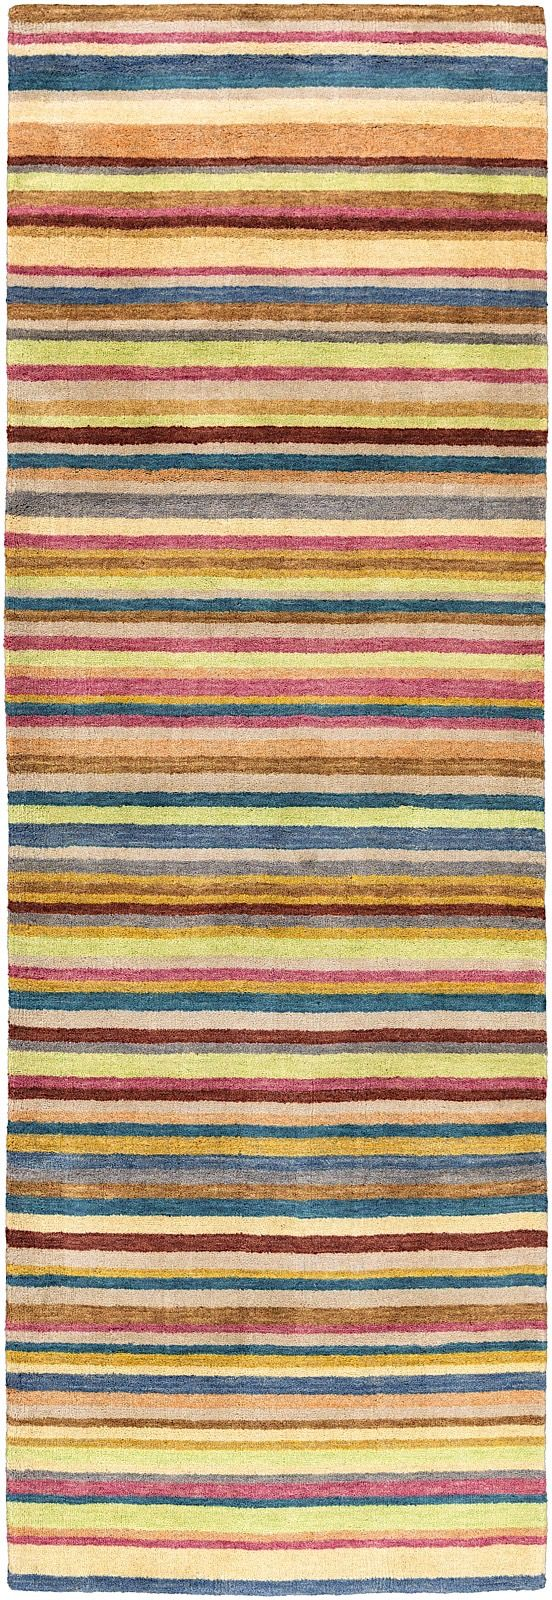 surya indus valley solid/striped area rug collection